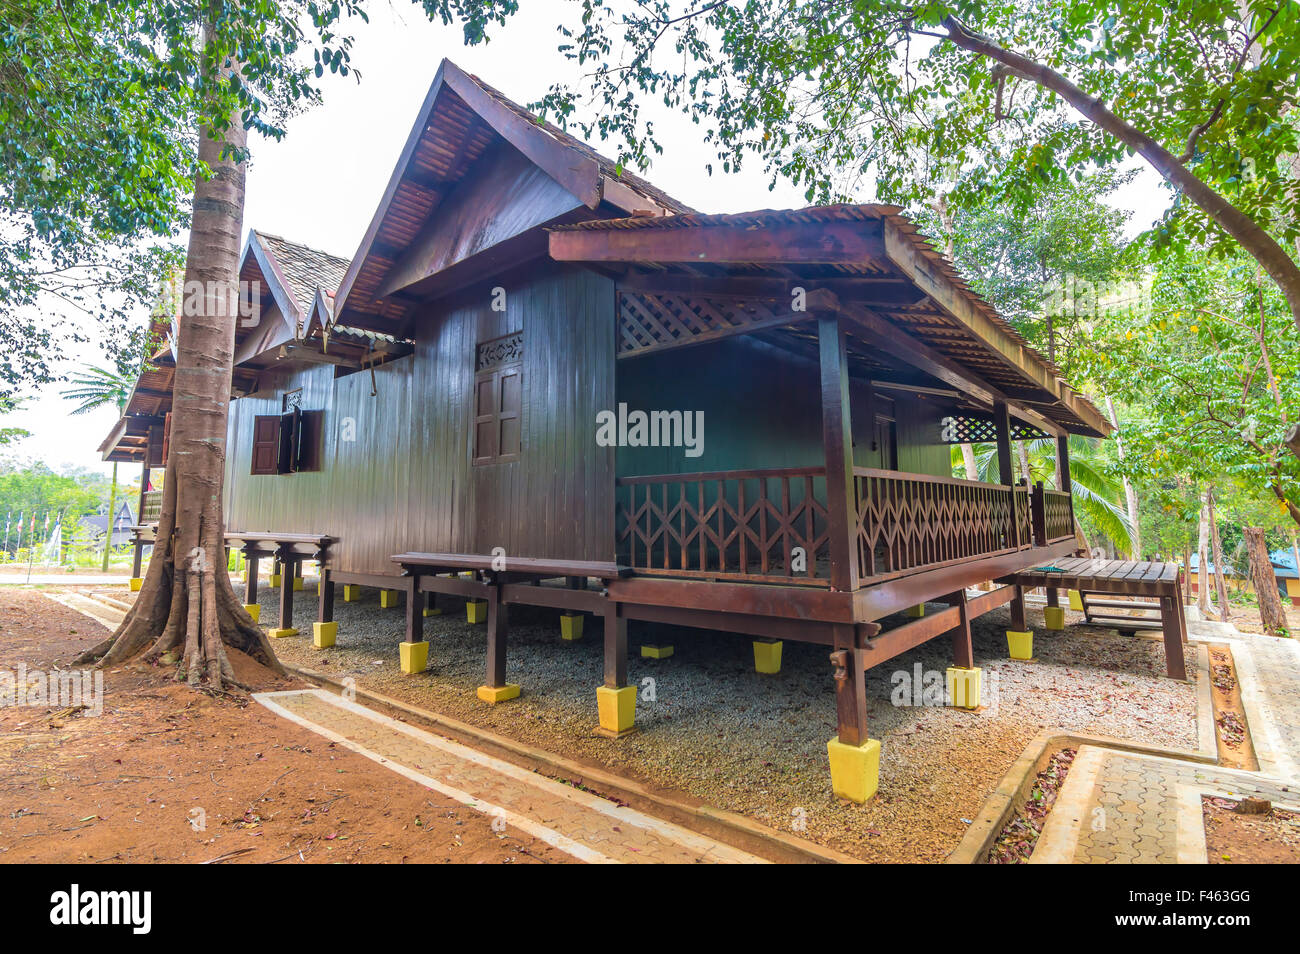 marvellous wooden house in malaysia philippines